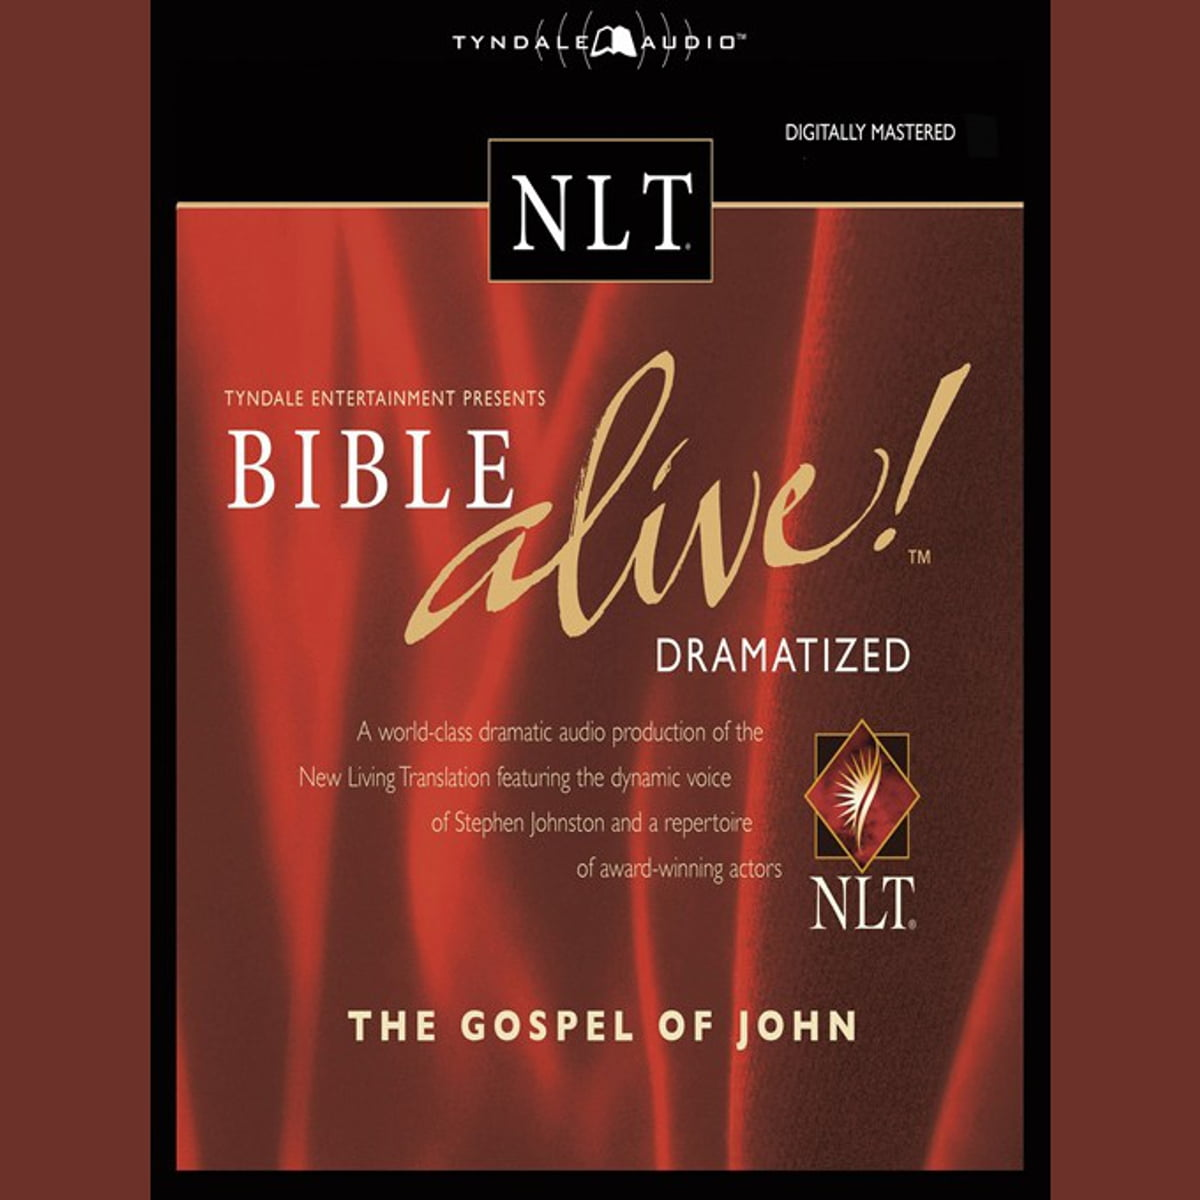 Bible Alive! NLT Gospel of John audiobook by Tyndale - Rakuten Kobo